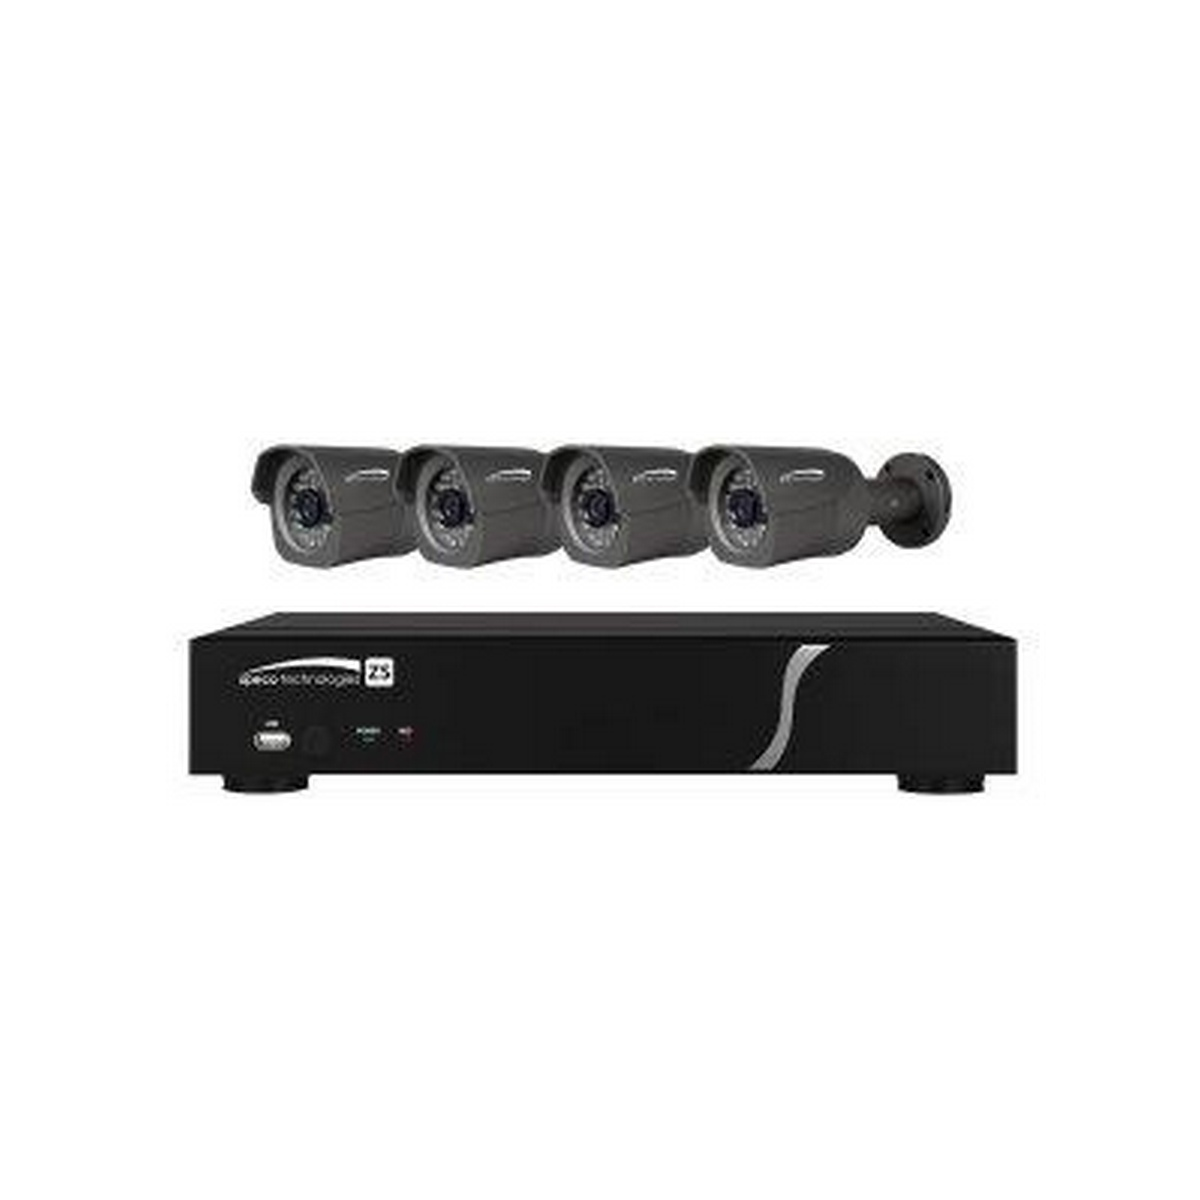 8 CH Plug-and-Play NVR 1080p, 240FPS, 2TB w/4 Outdoor IR Bullet 3.7mm lens